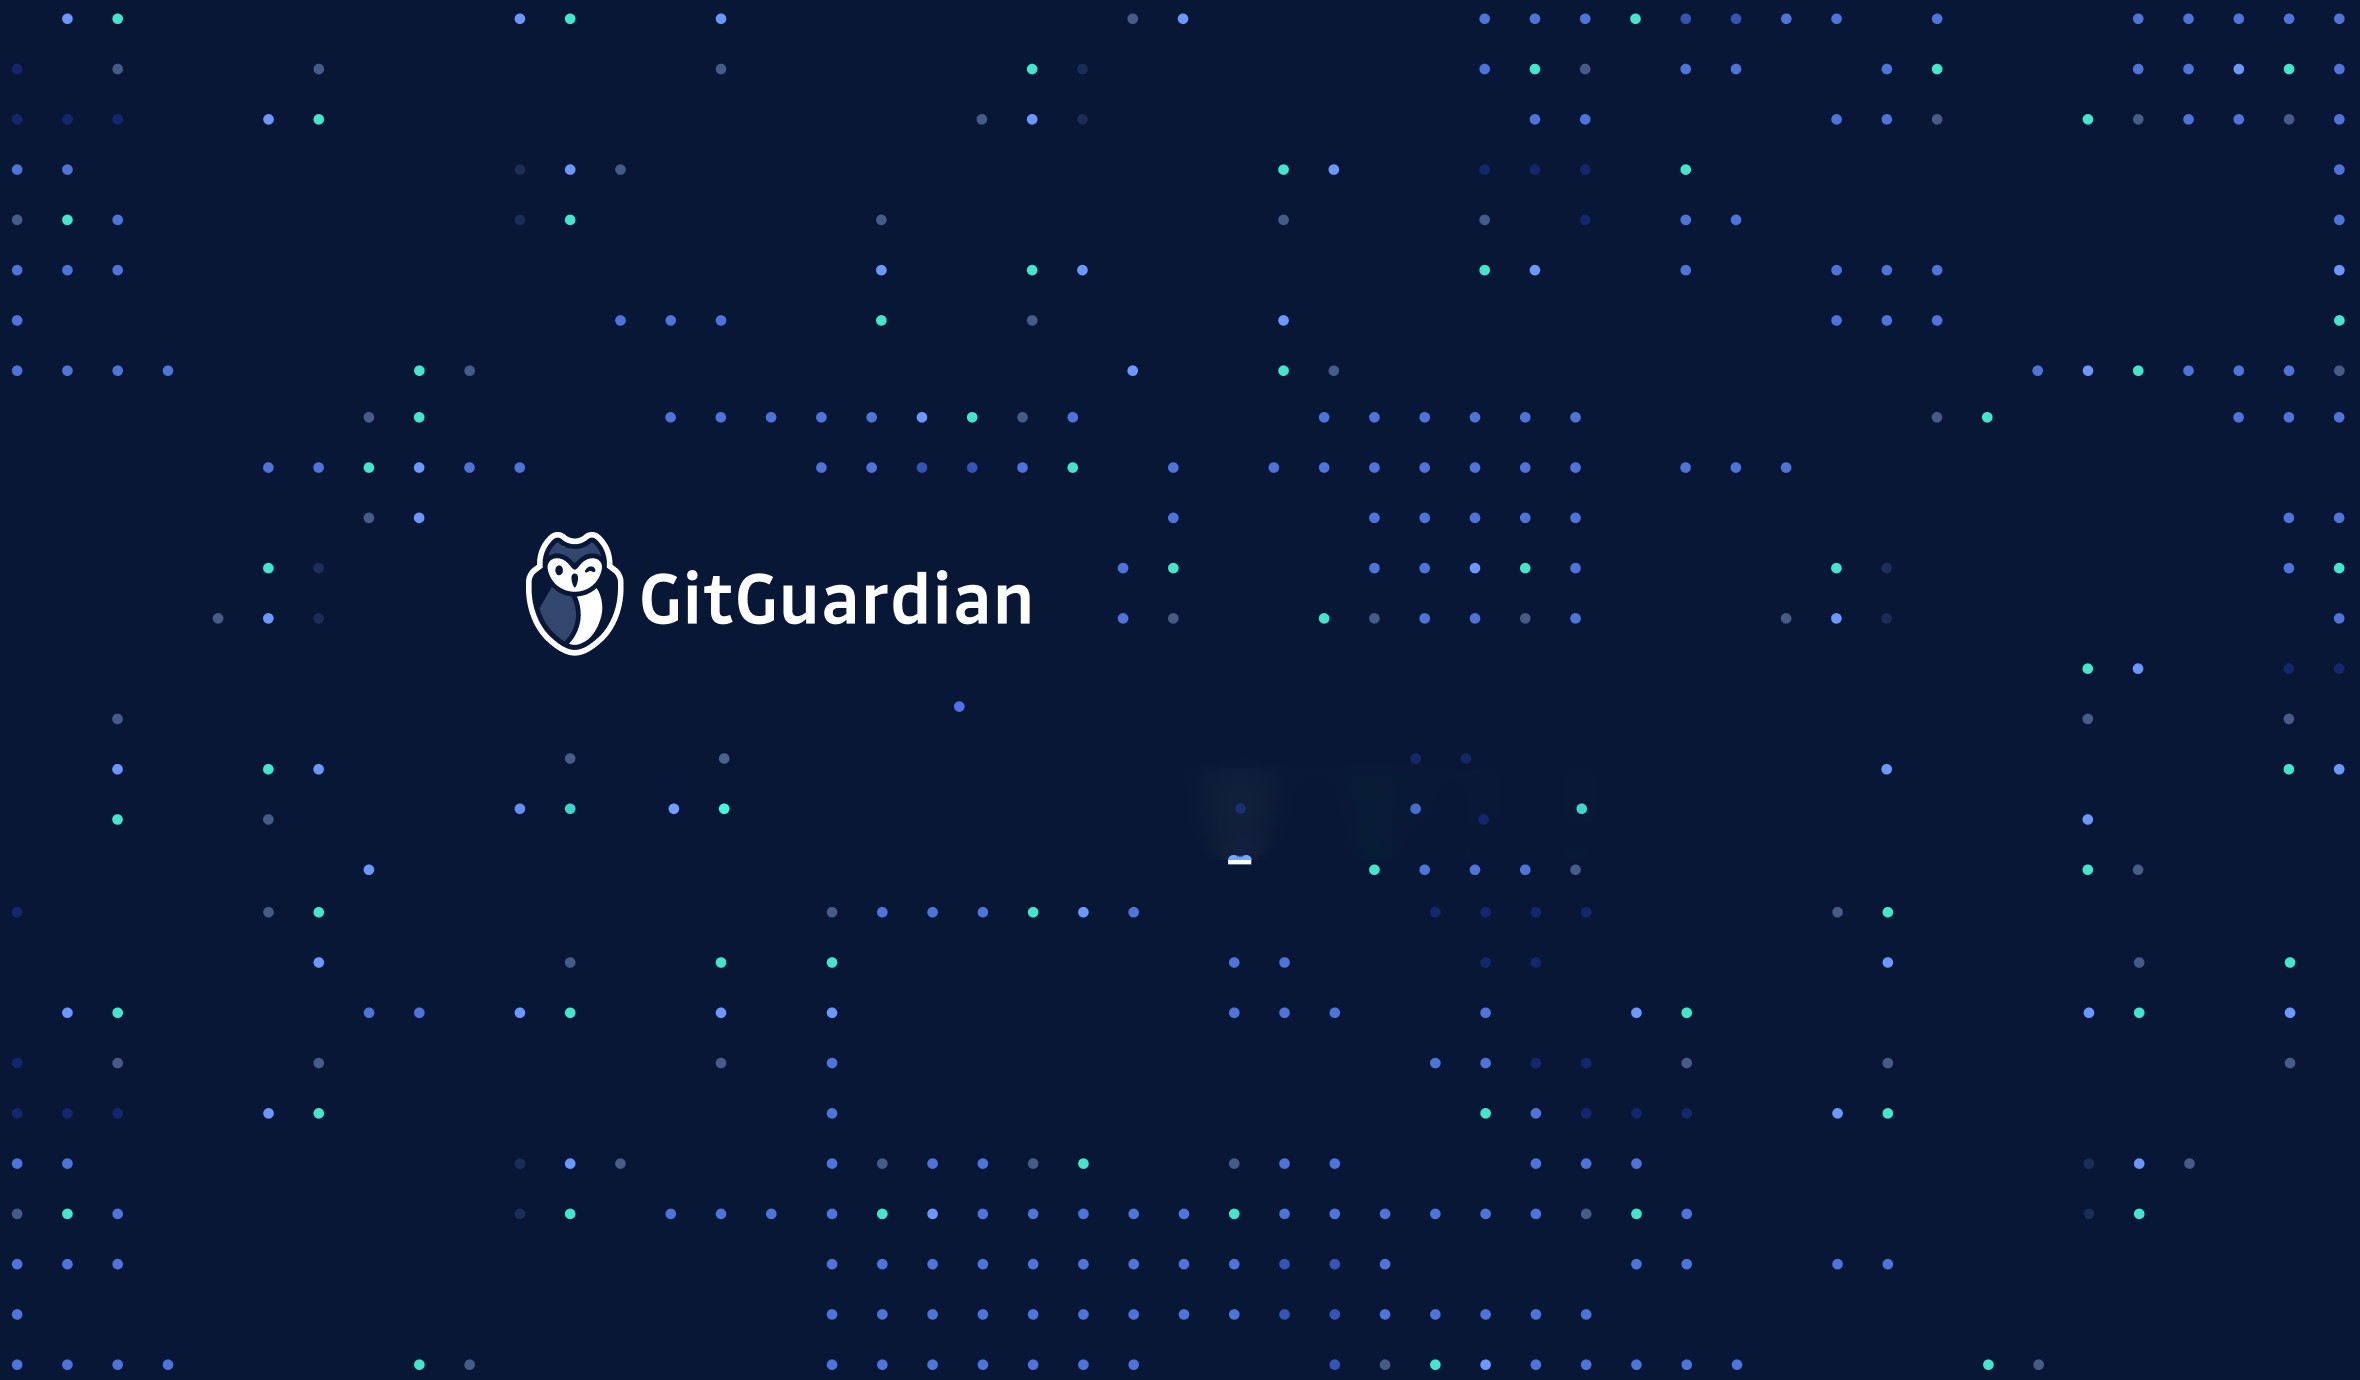 GitGuardian CEO Jérémy Thomas talks with FrenchWeb about recent capital raise and automating secrets detection for Threat Intelligence and Data Loss Prevention